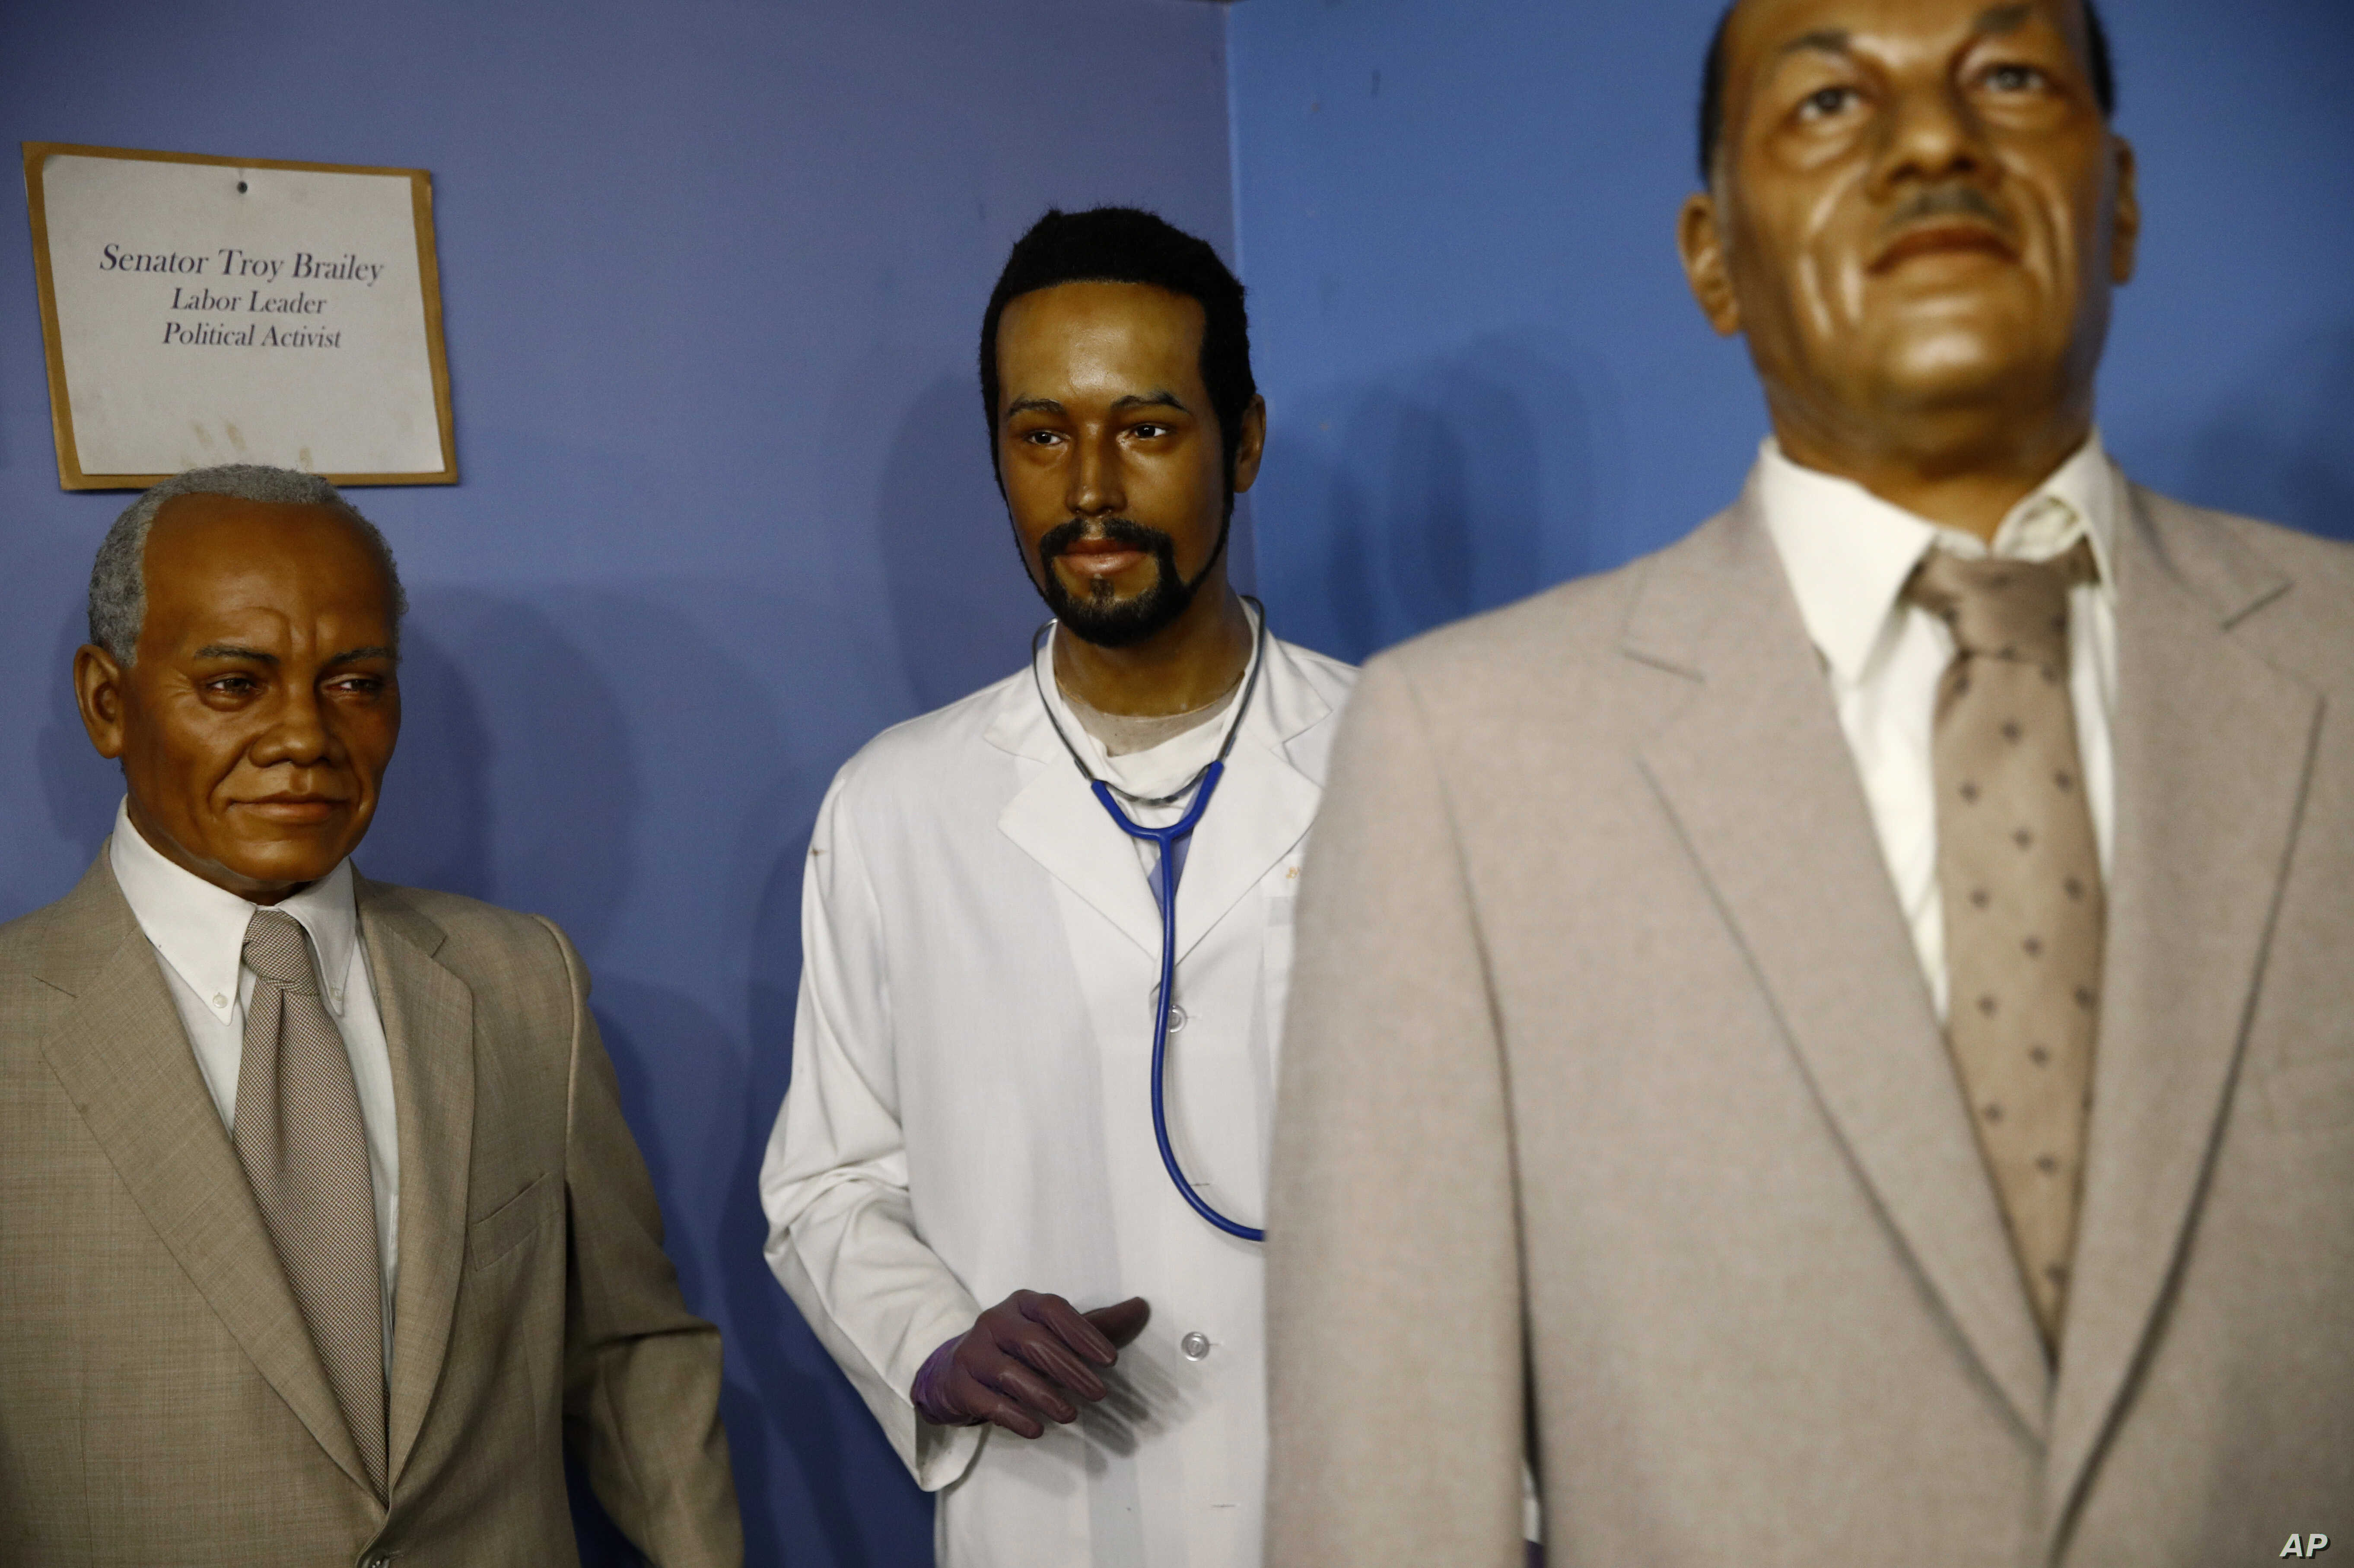 In this Aug. 15, 2018 photo, a wax figure depicting Department of Housing and Urban Development secretary Ben Carson, center, from his days as a neurosurgeon stands in a gallery at the National Great Blacks In Wax Museum in Baltimore.